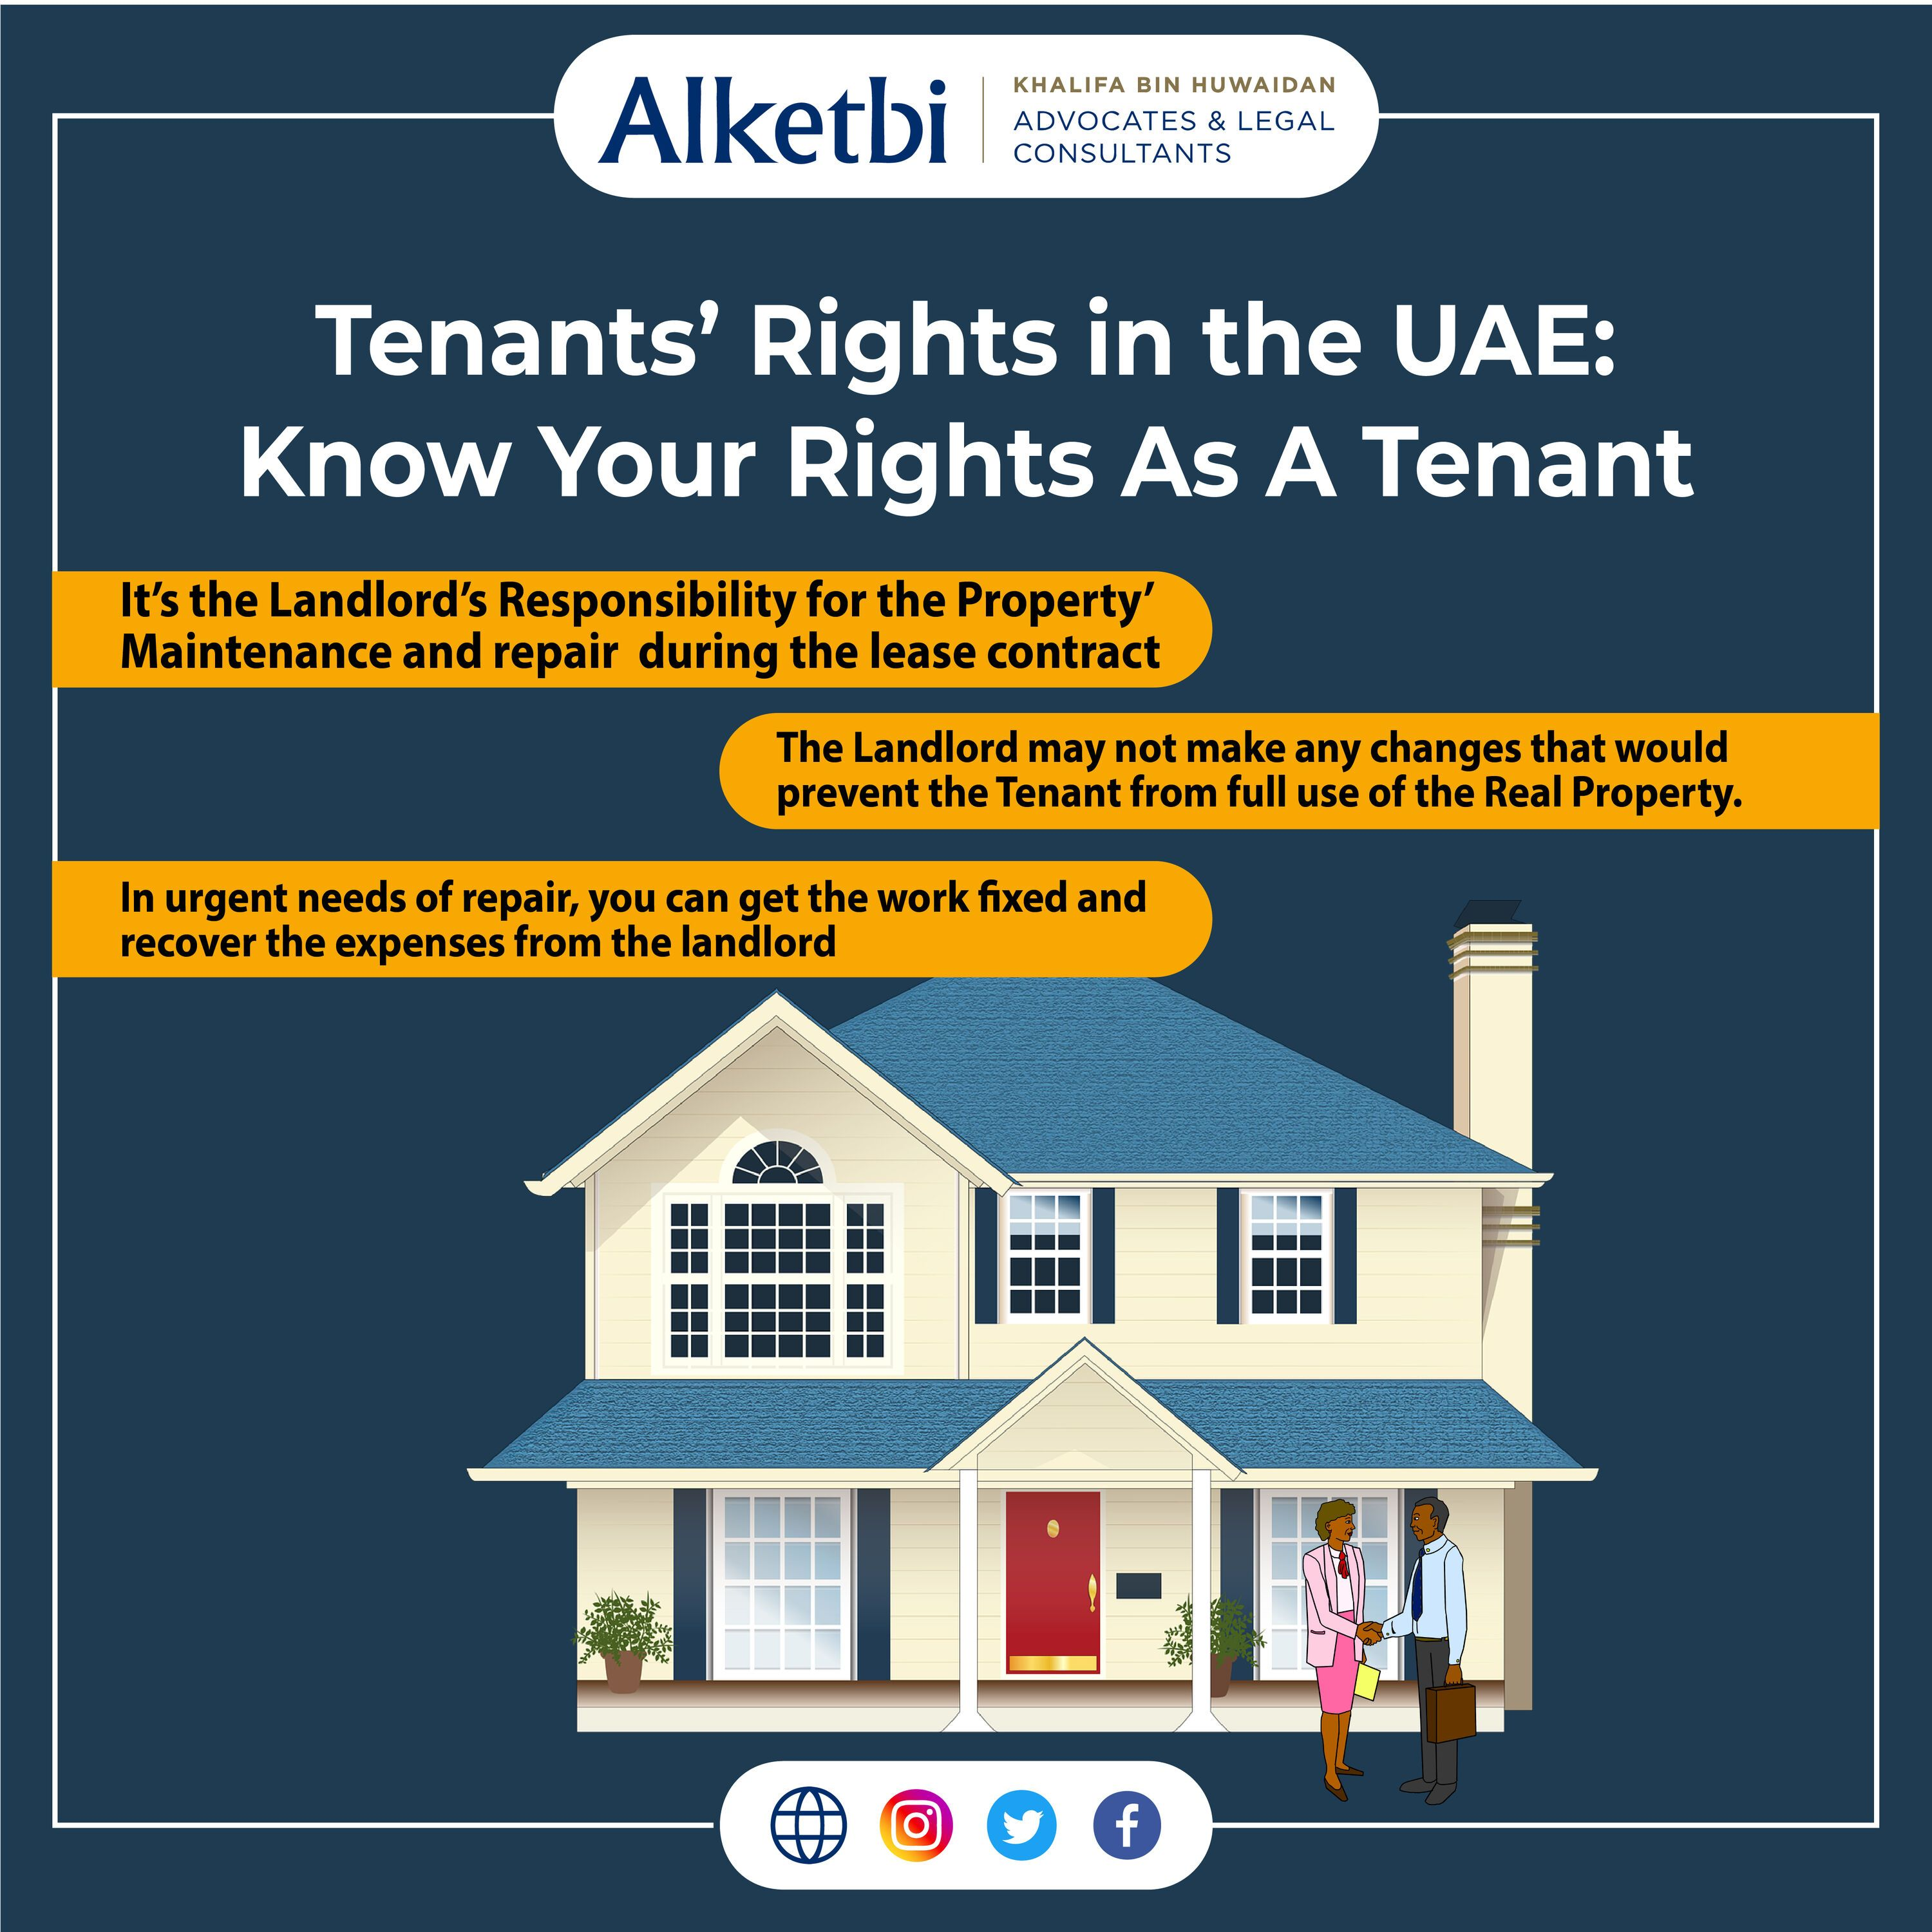 Know Your Rights As The Tenant If Youre Living As A Tenant In Uae But Are Not Sure About Your Rights As A Tenant Talk To Experts A In 2021 Law Living rights to a house